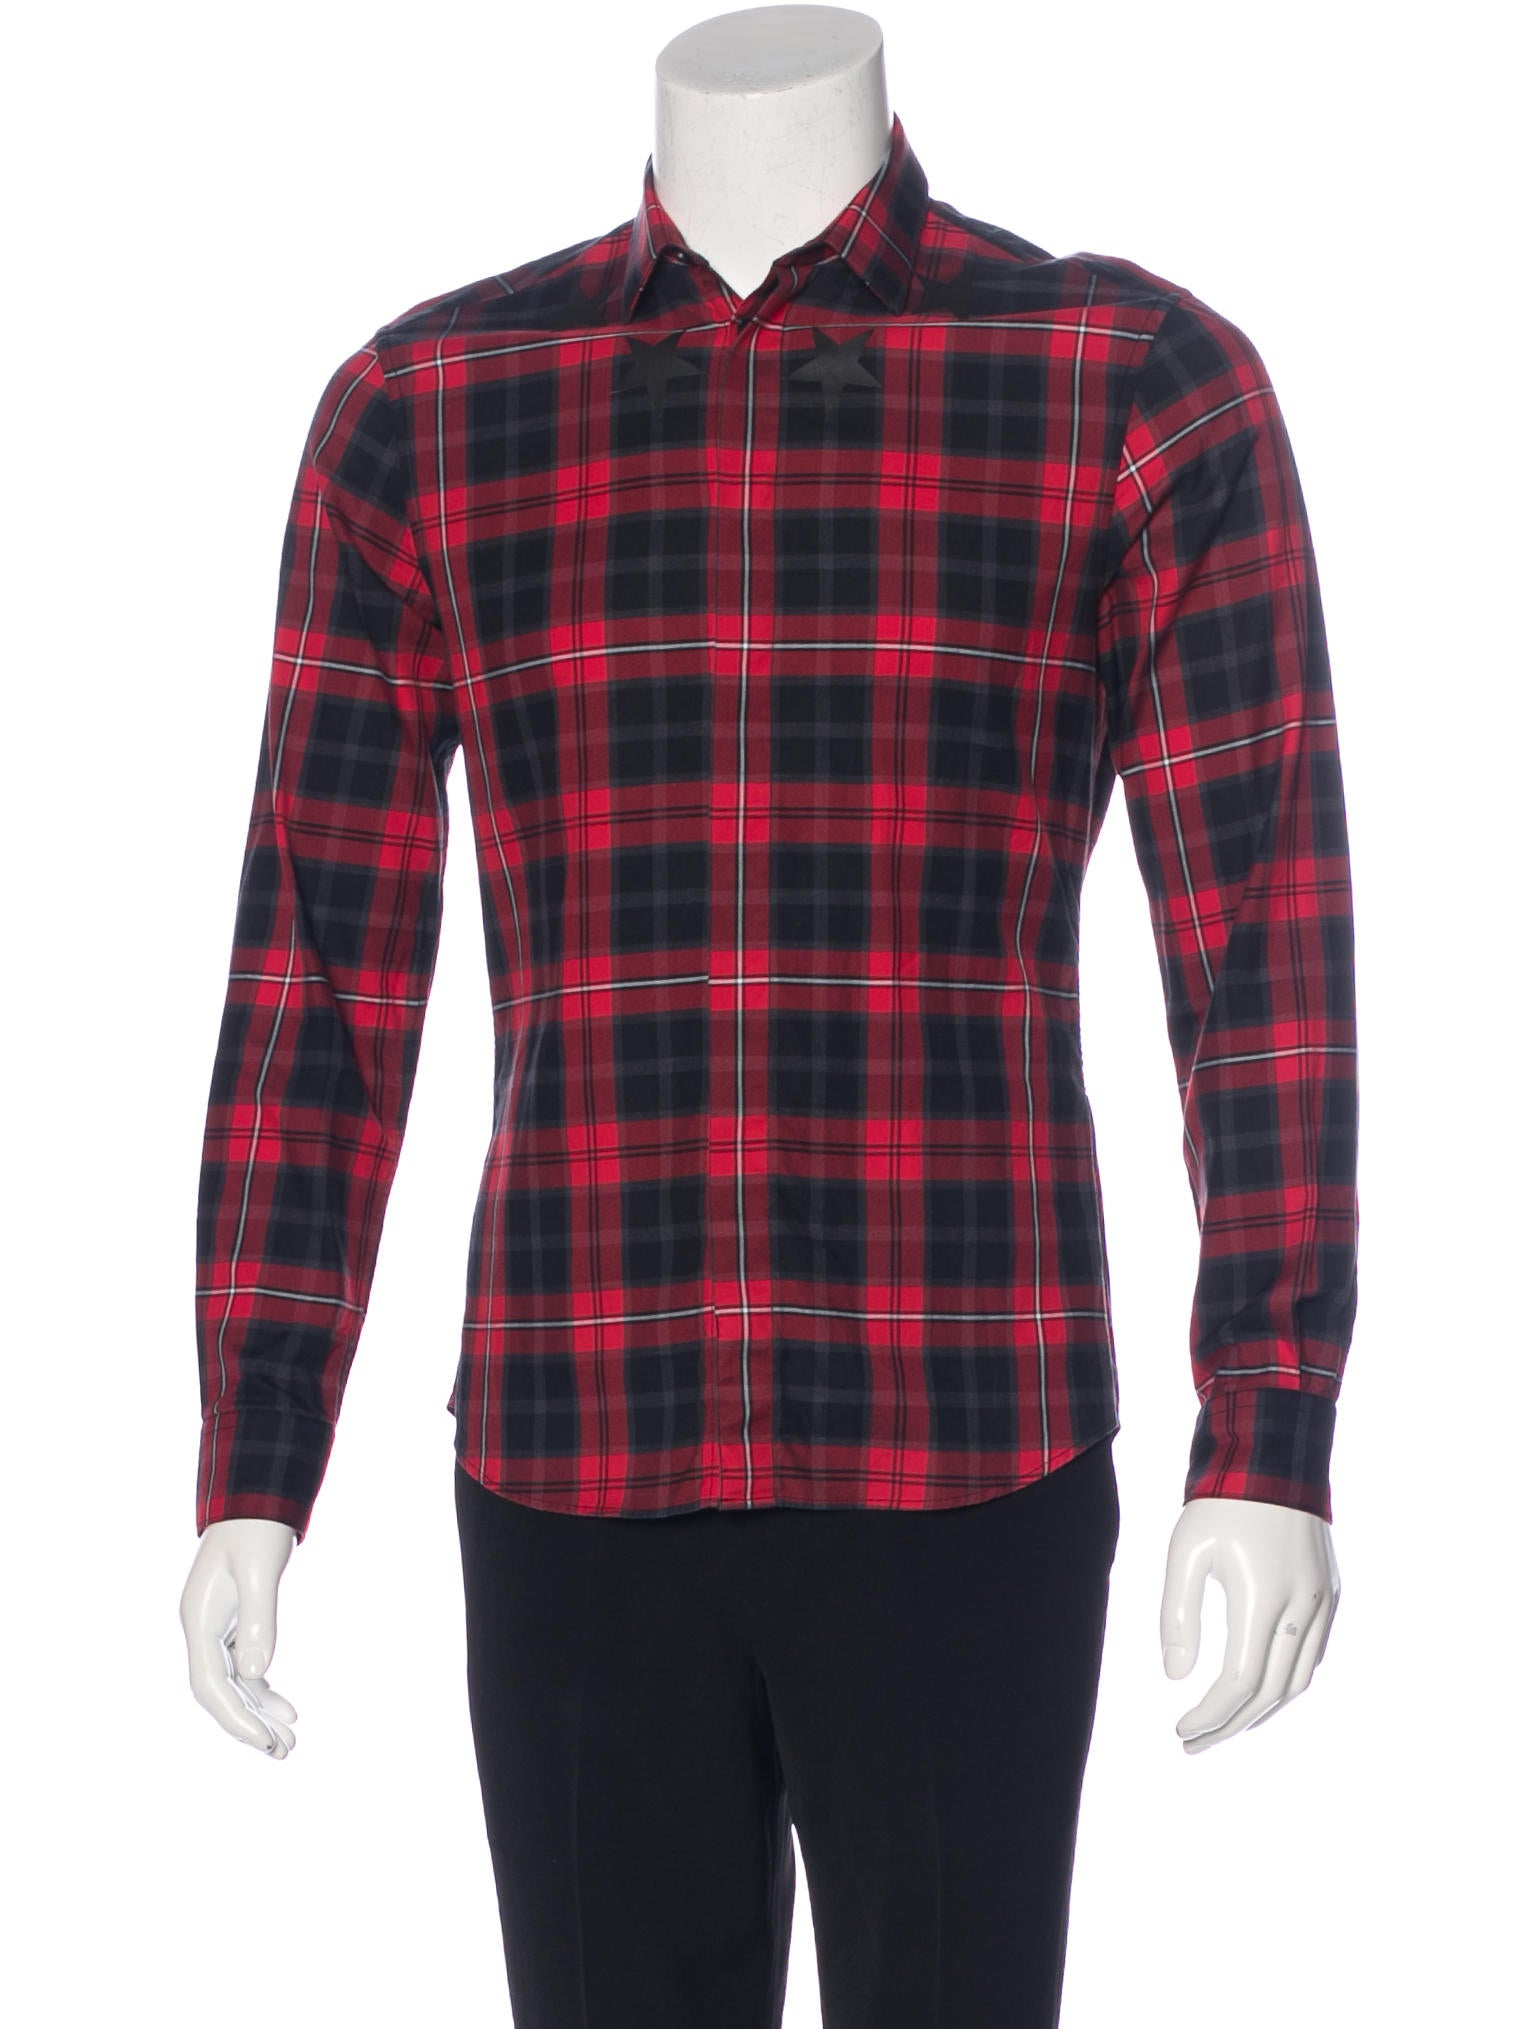 Givenchy 2015 plaid star shirt clothing giv41376 the for Givenchy 5 star shirt